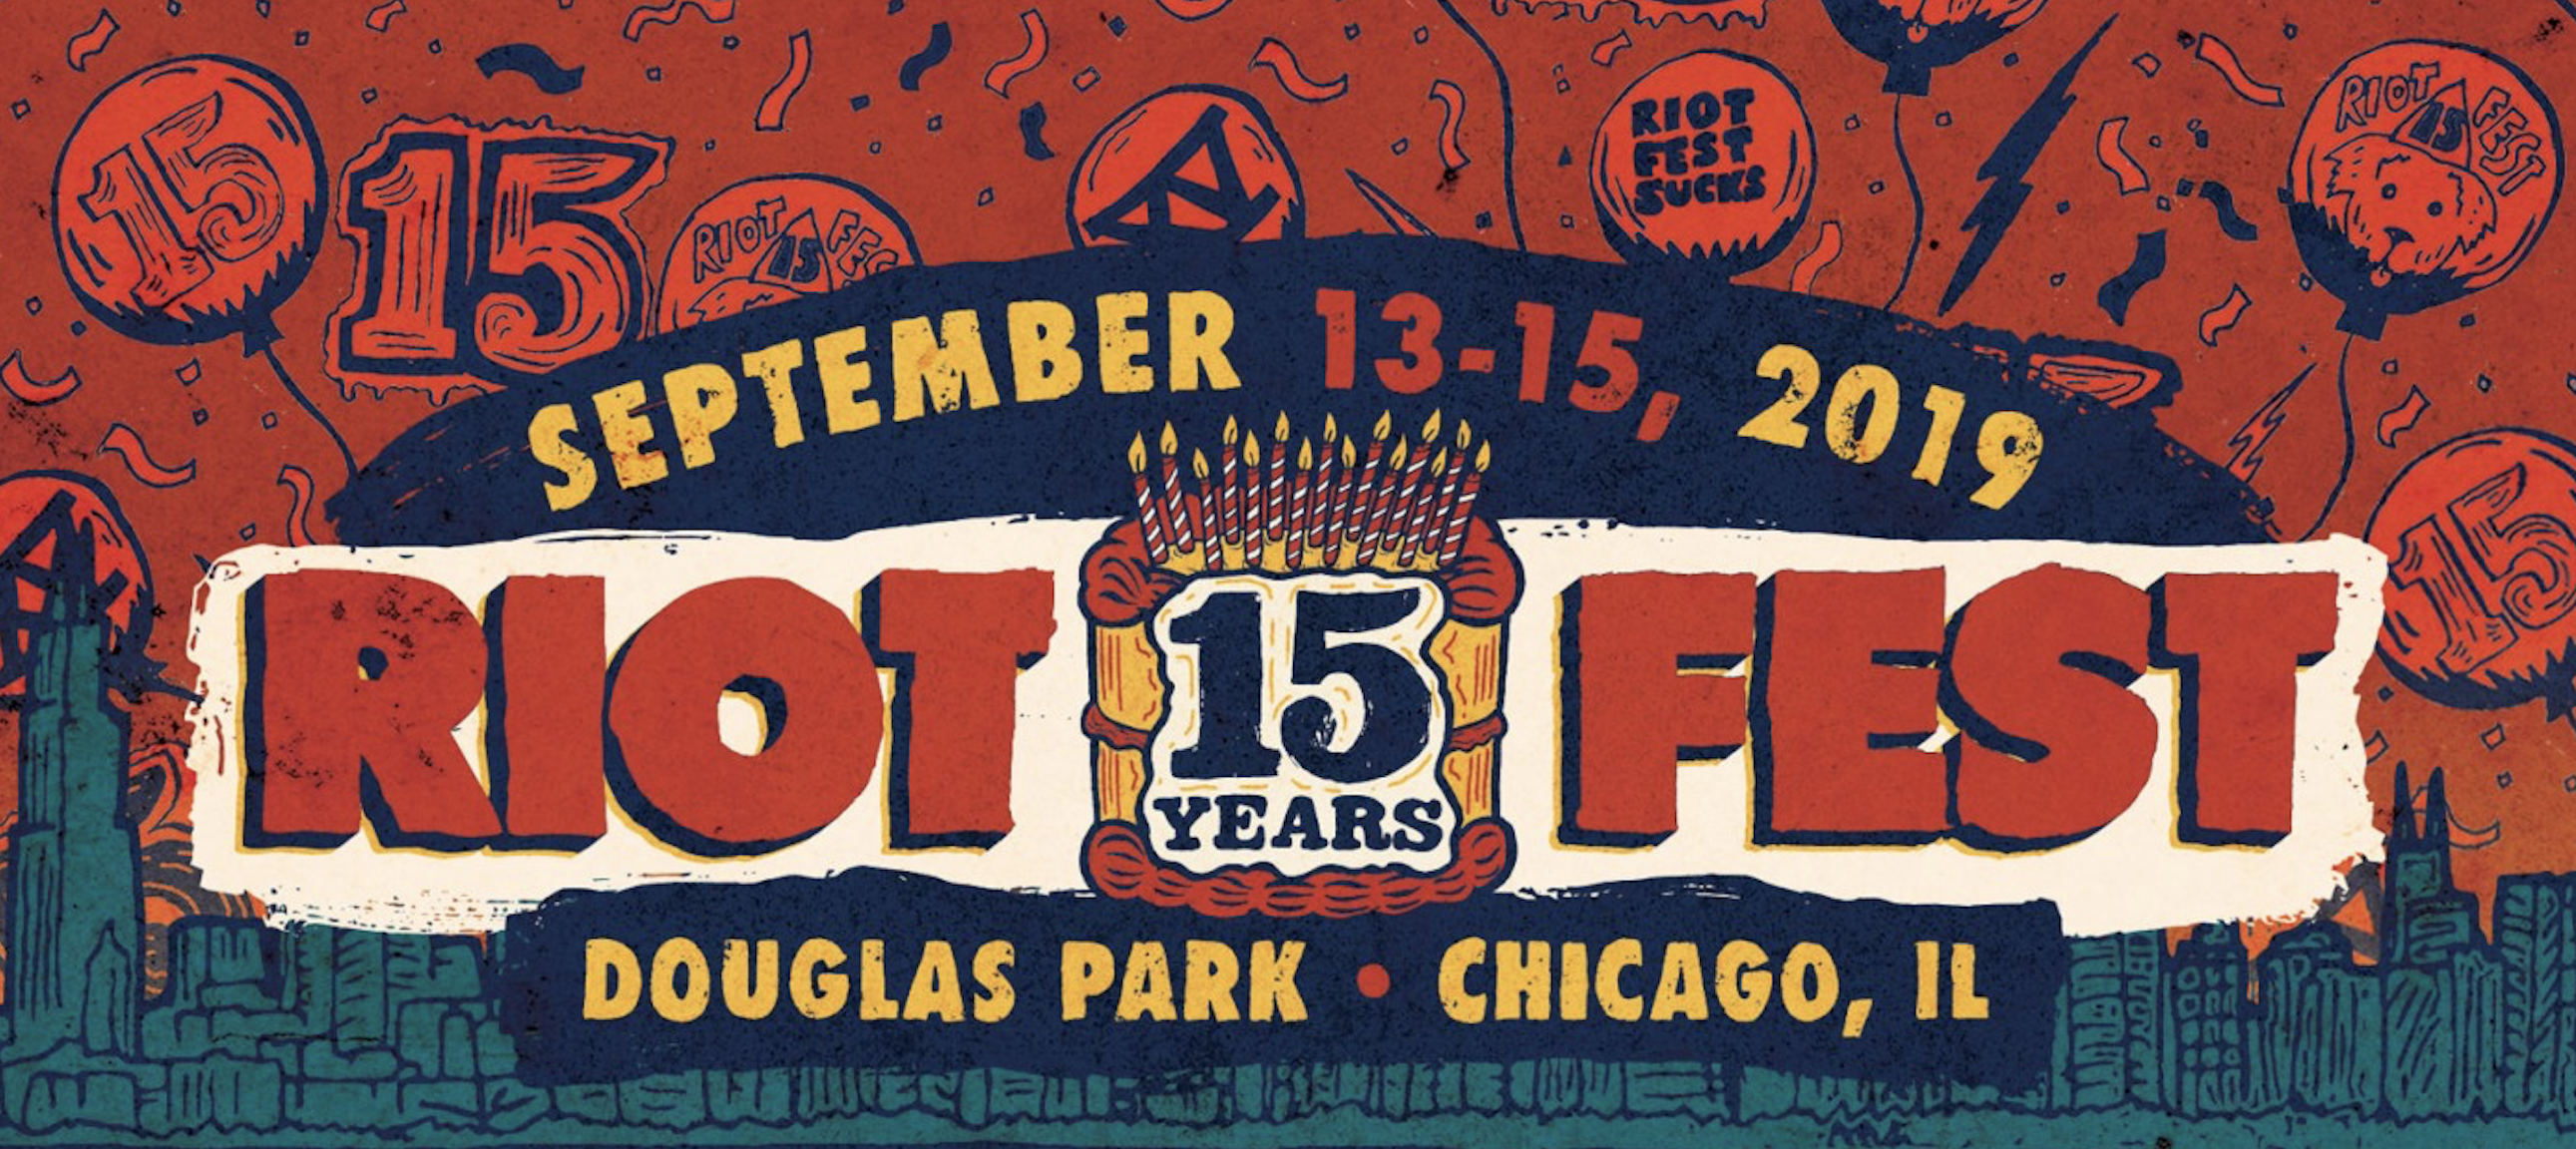 Riot Fest announces lineup for its 15th anniversary